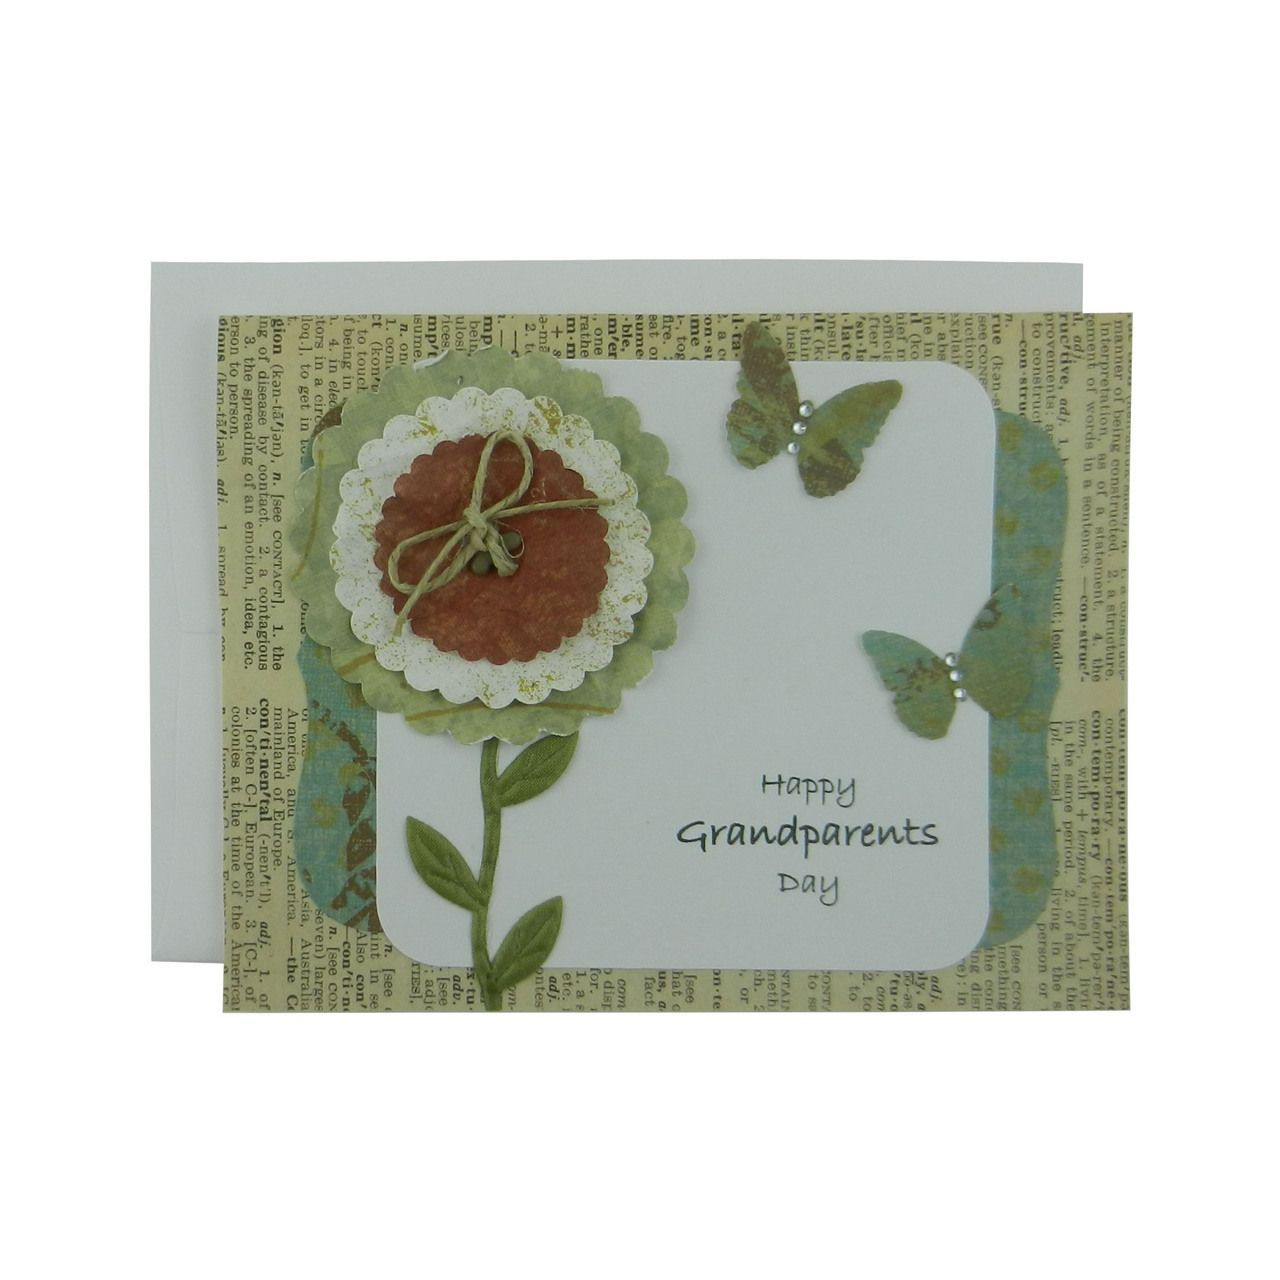 Grandparents Day Card Handmade Greeting Card For Grandparents Day